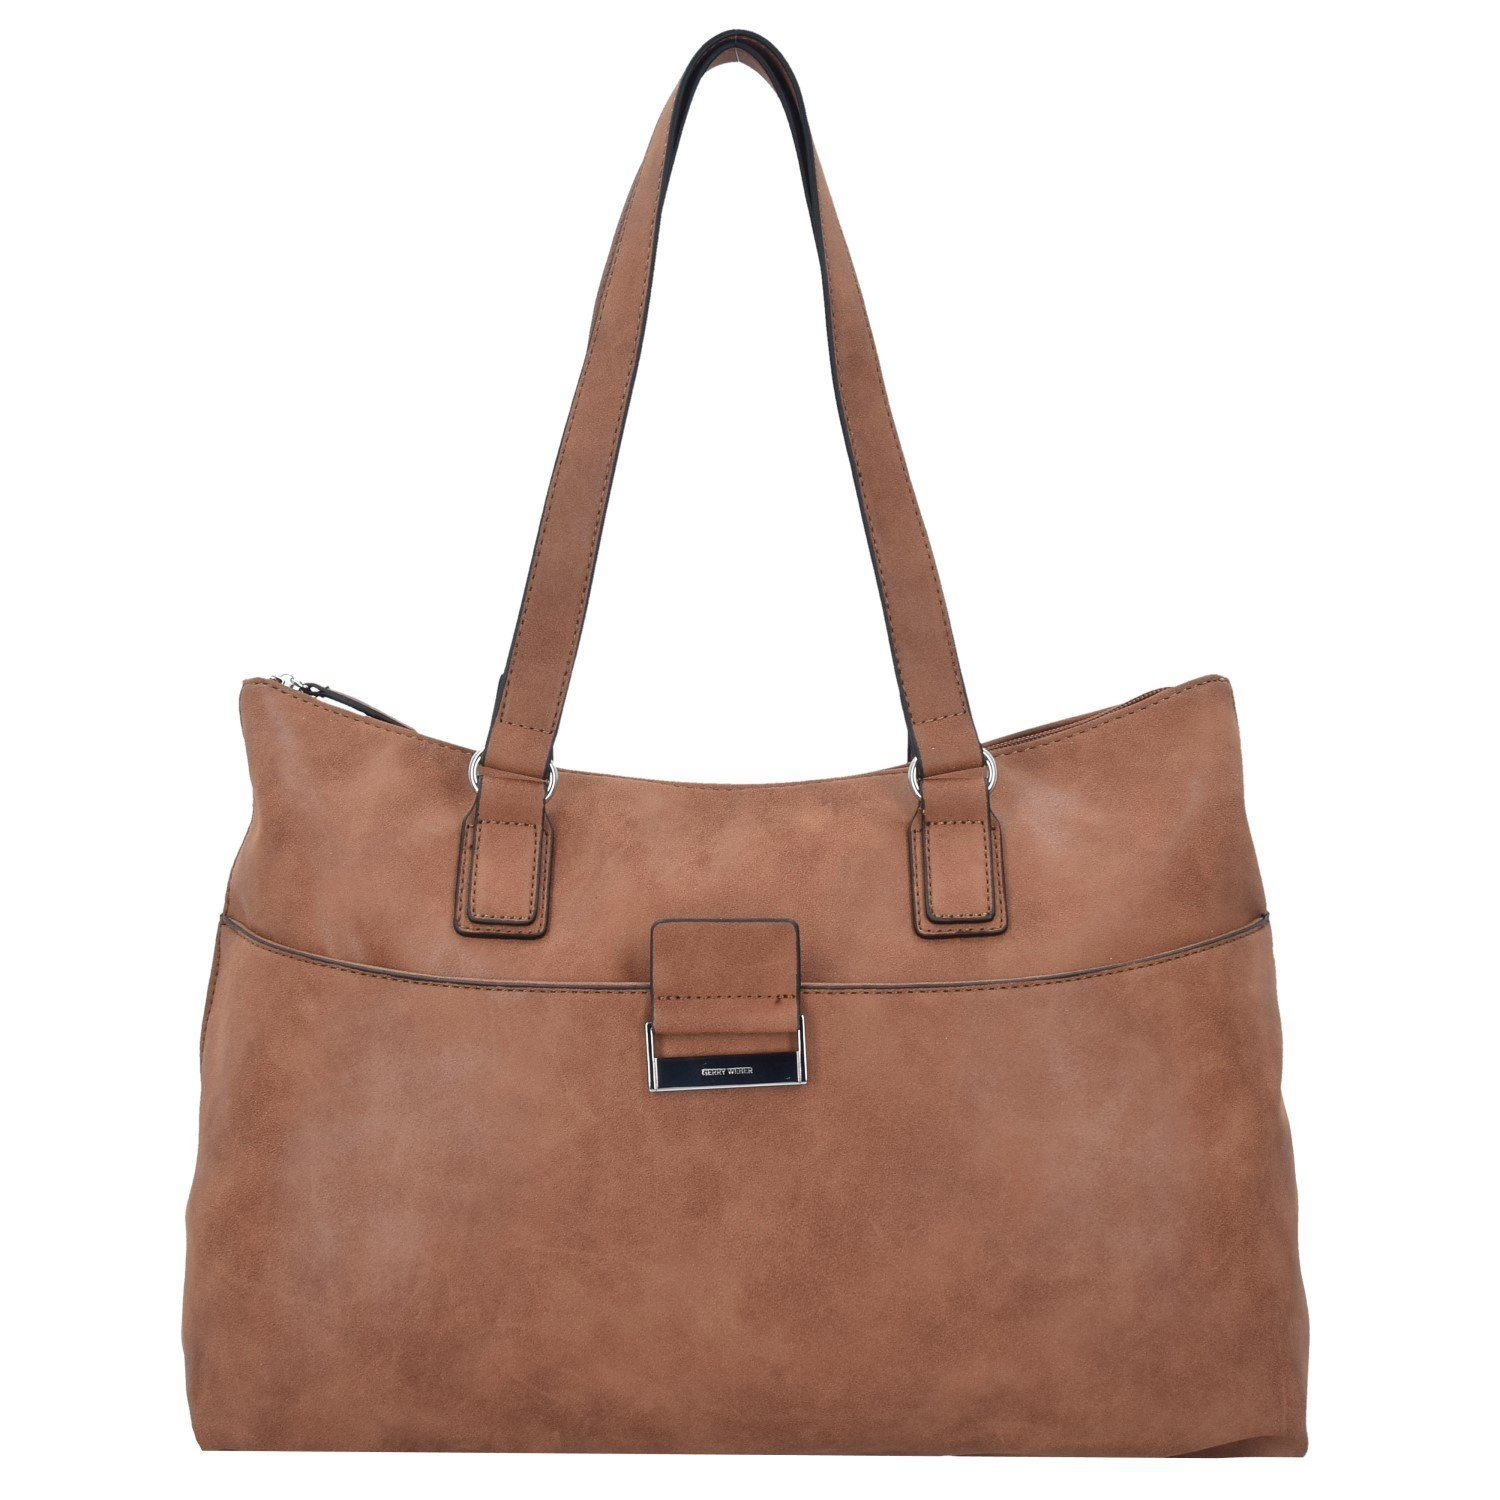 Gerry Weber Be Different Shopper Tasche 41 cm